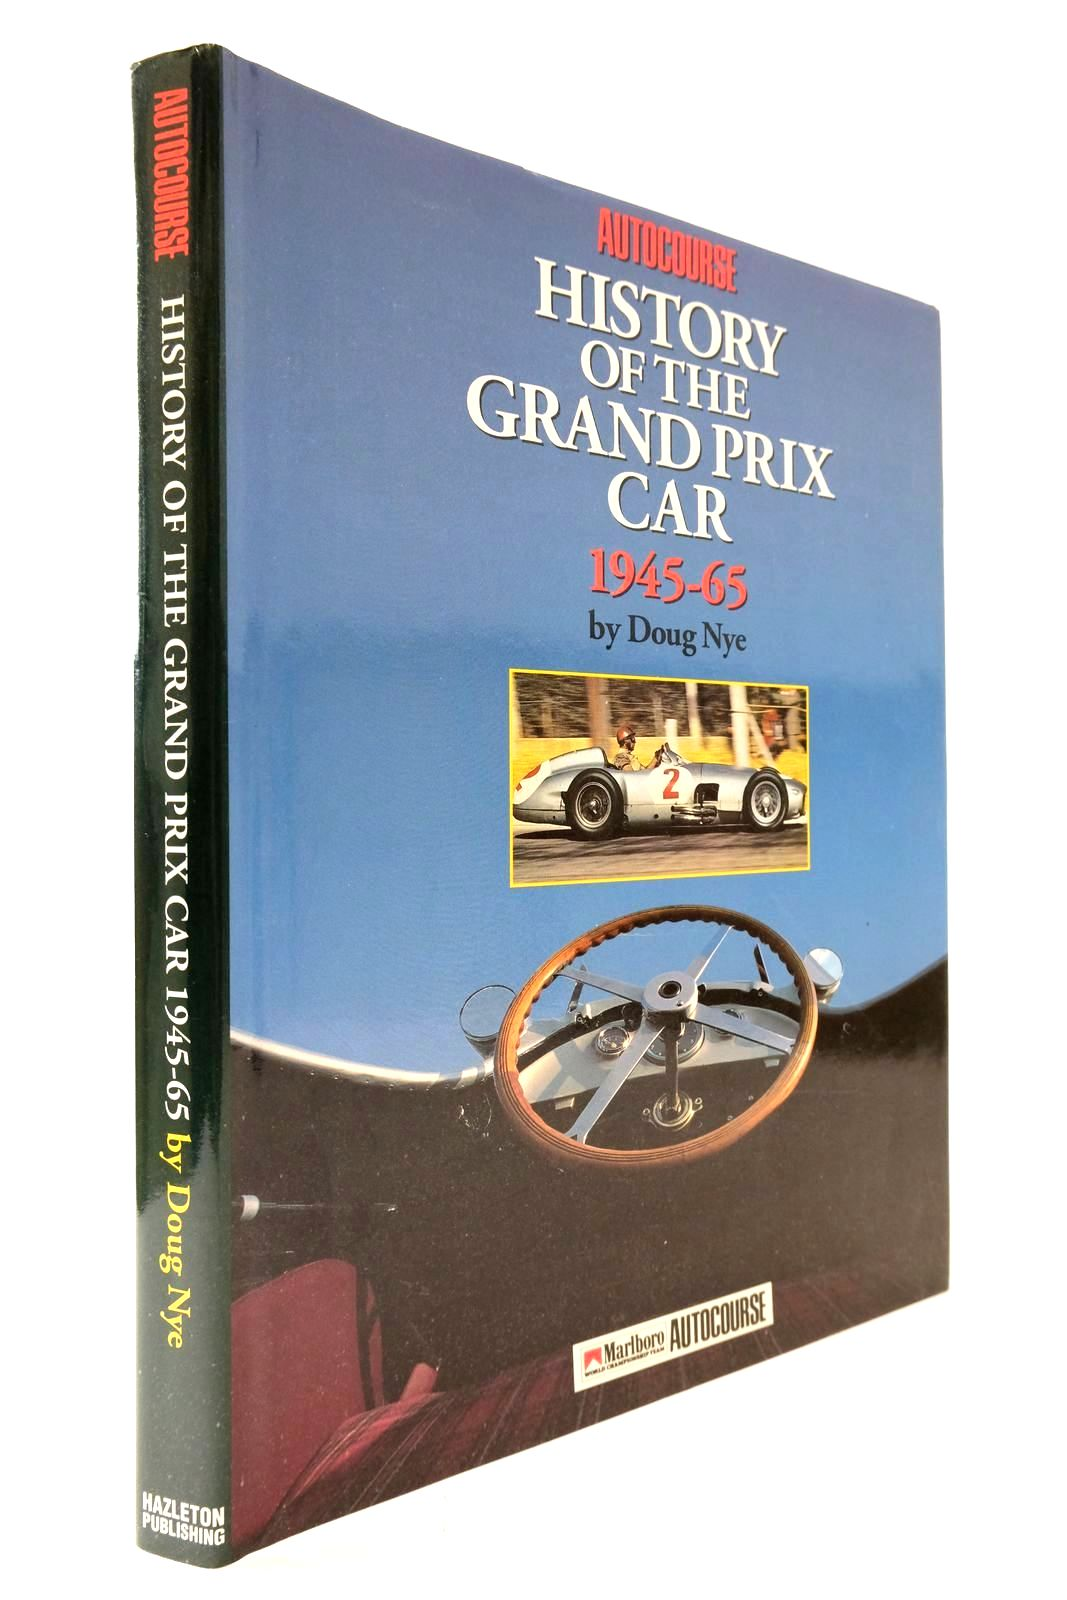 Photo of THE AUTOCOURSE HISTORY OF THE GRAND PRIX CAR 1945-1965 written by Nye, Doug published by Hazleton Publishing (STOCK CODE: 2132913)  for sale by Stella & Rose's Books